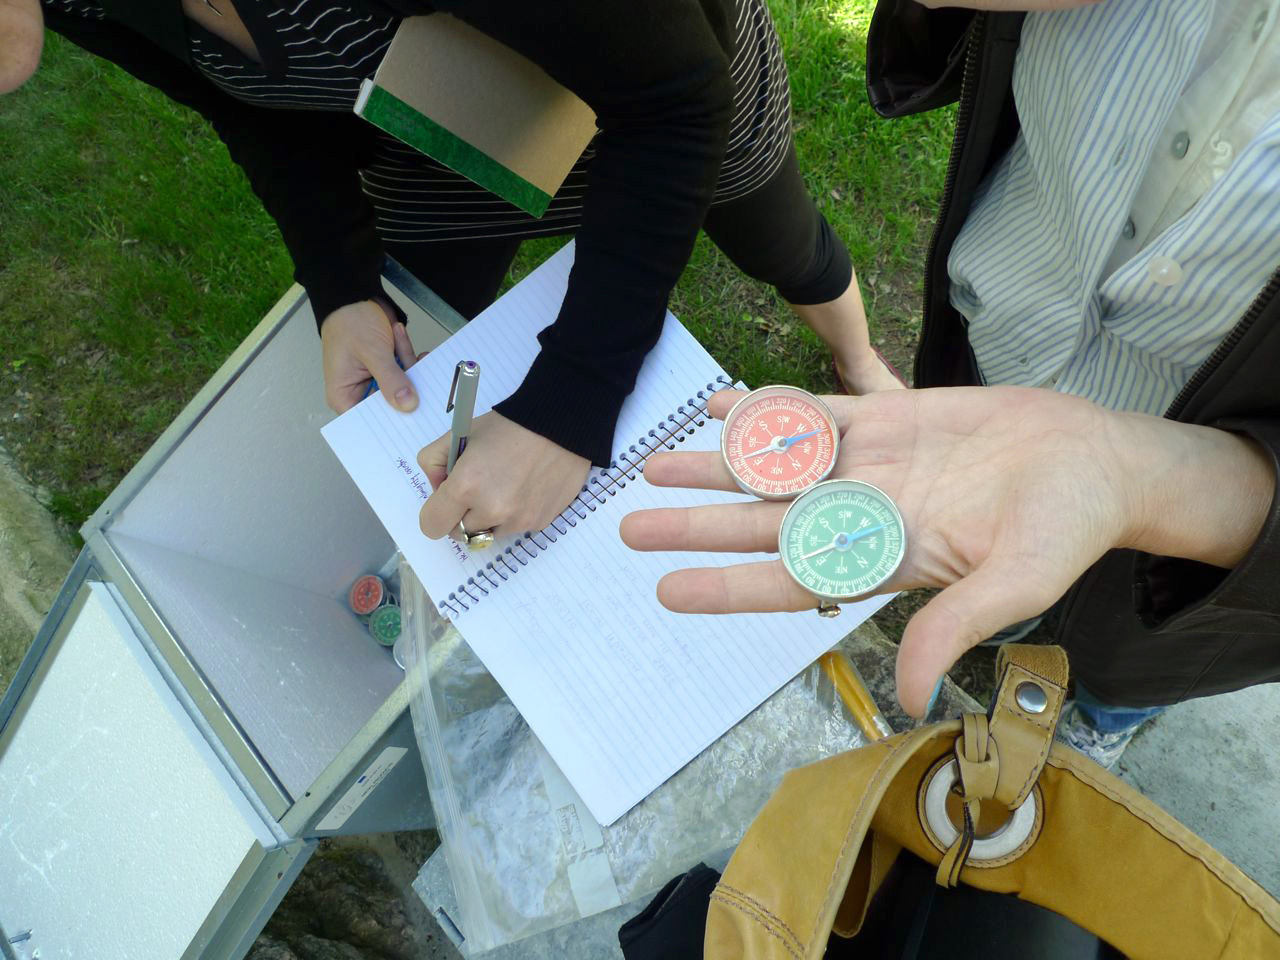 Ruti and Laurie log their visit and claim their compasses